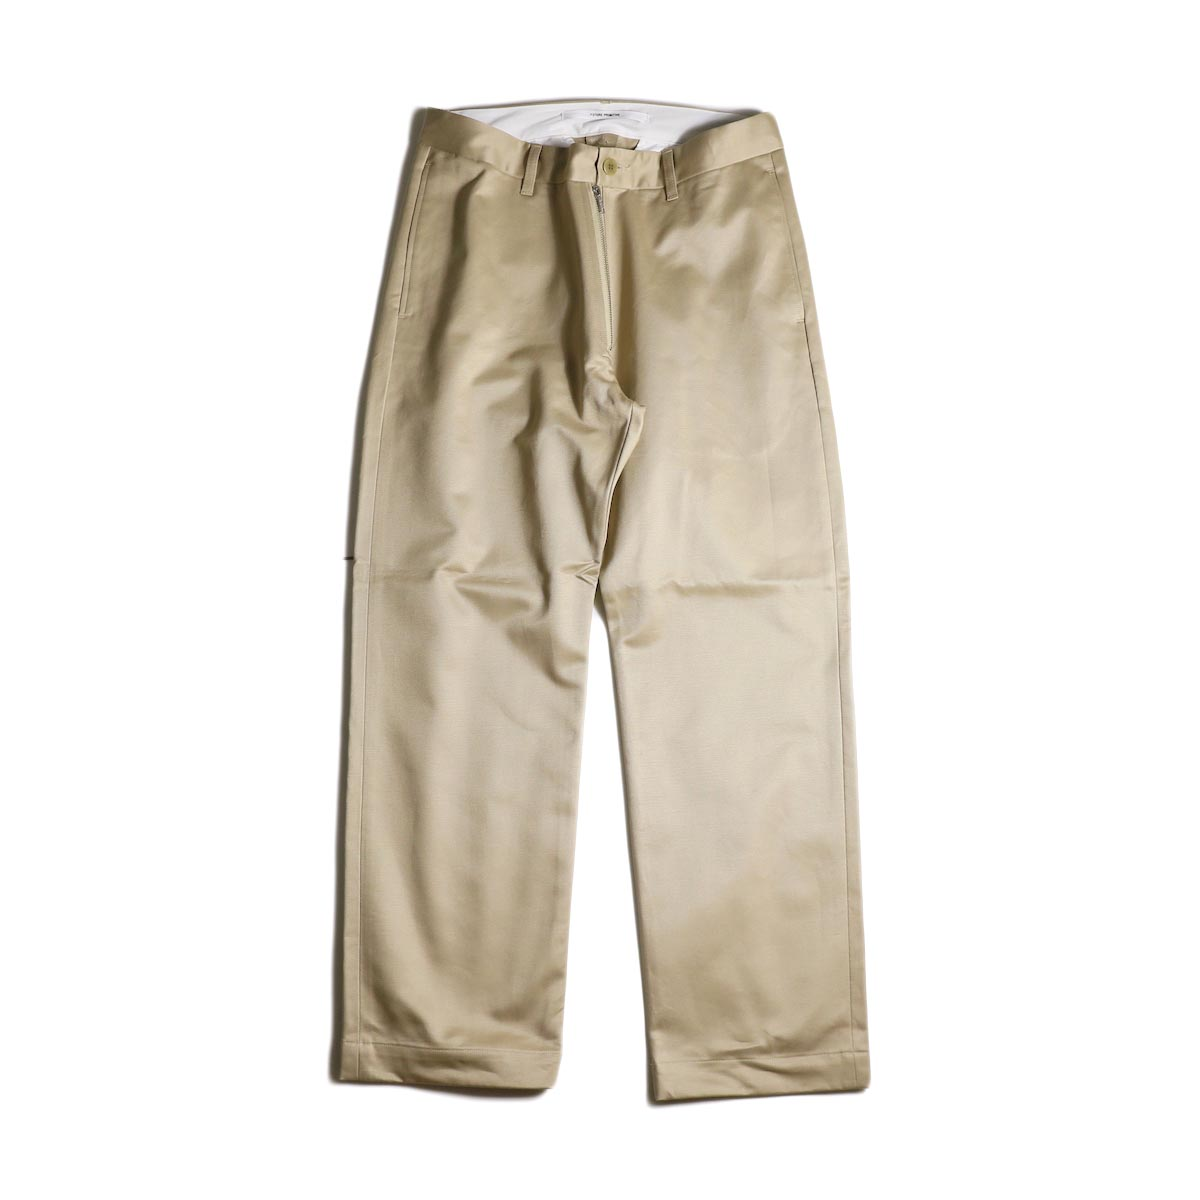 FUTURE PRIMITIVE / FP FZ CHINO PANTS (Beige)